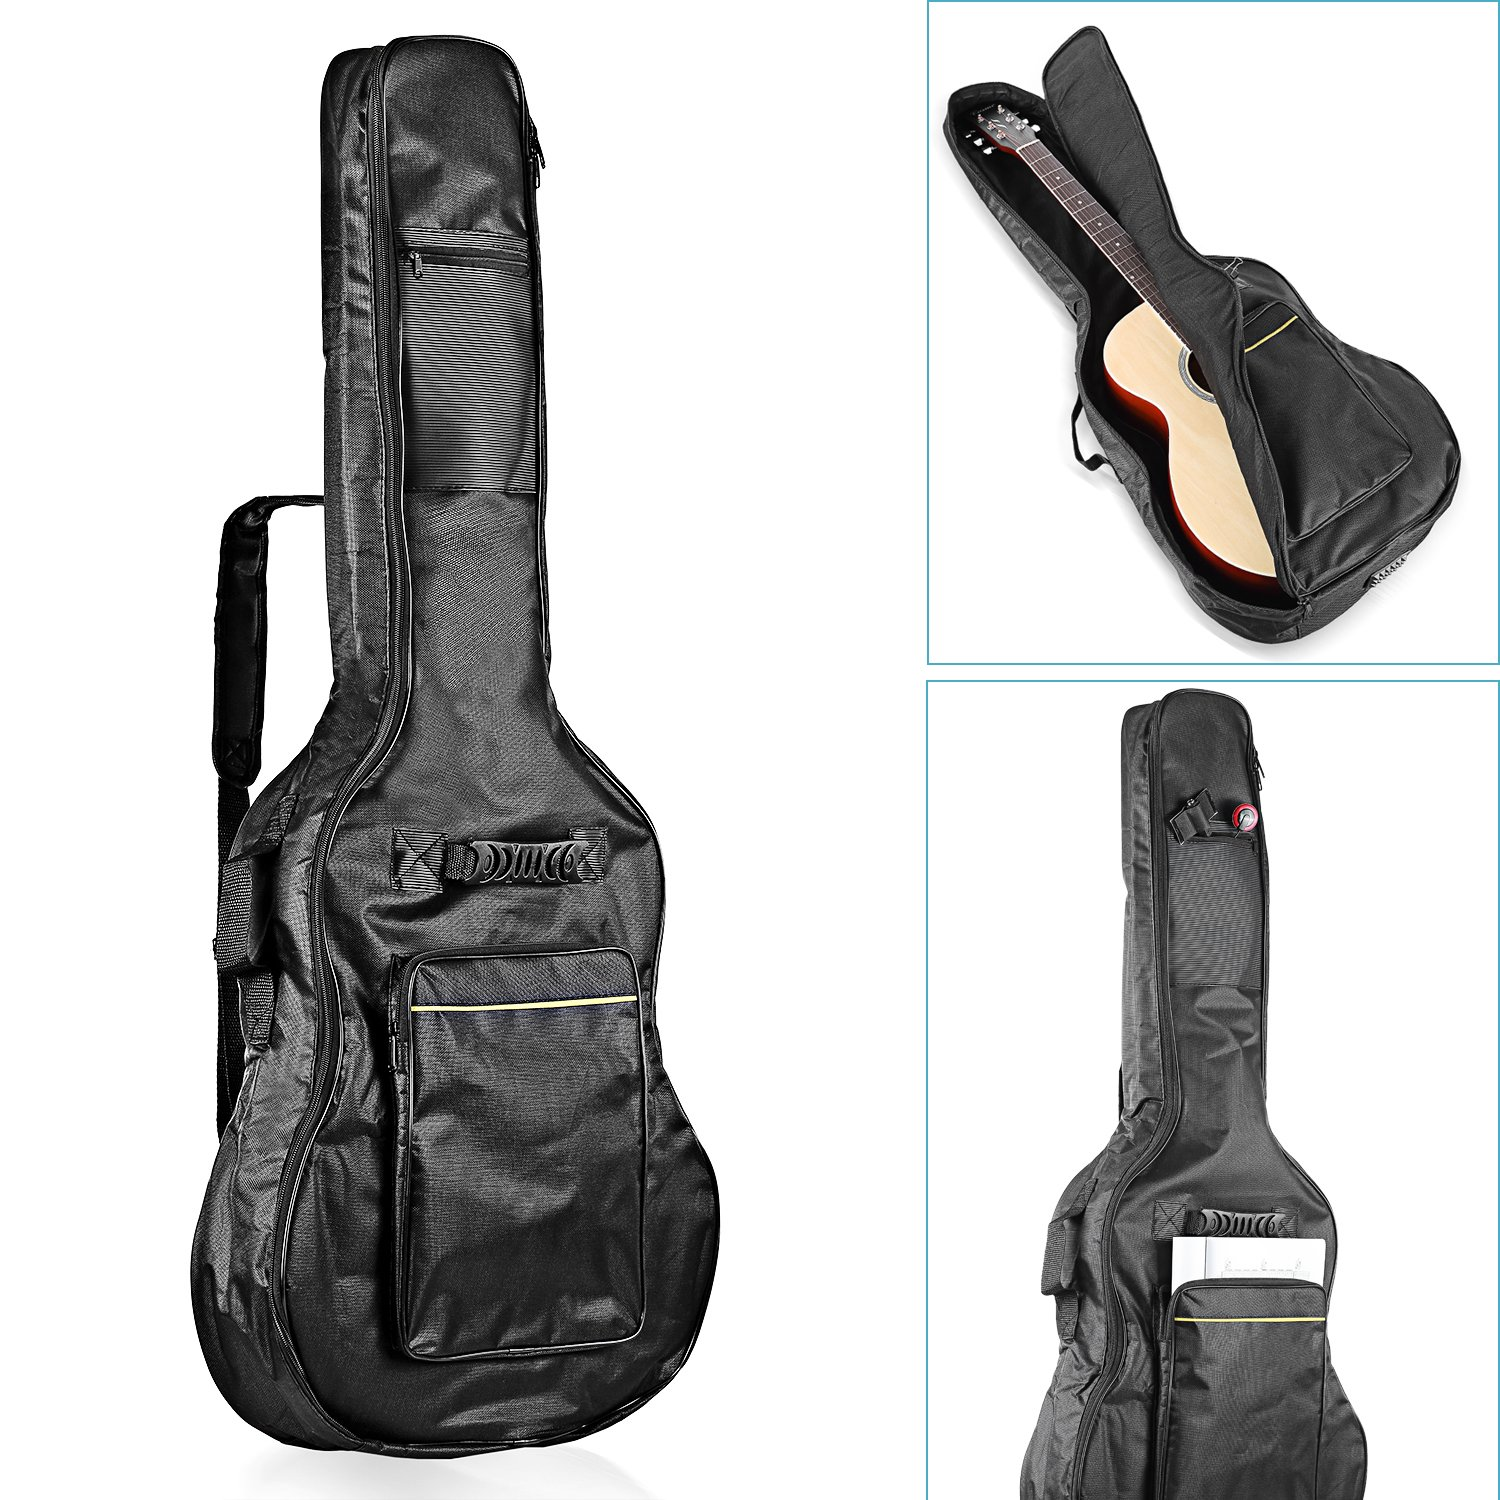 Neewer® Protective Acoustic Guitar Padded Gig Bag with 2 Shoulder Straps, 2 Handles and Extra Pockets, Made of Durable and Waterproof Nylon, Fit Most Standard Acoustic Guitars (Black)